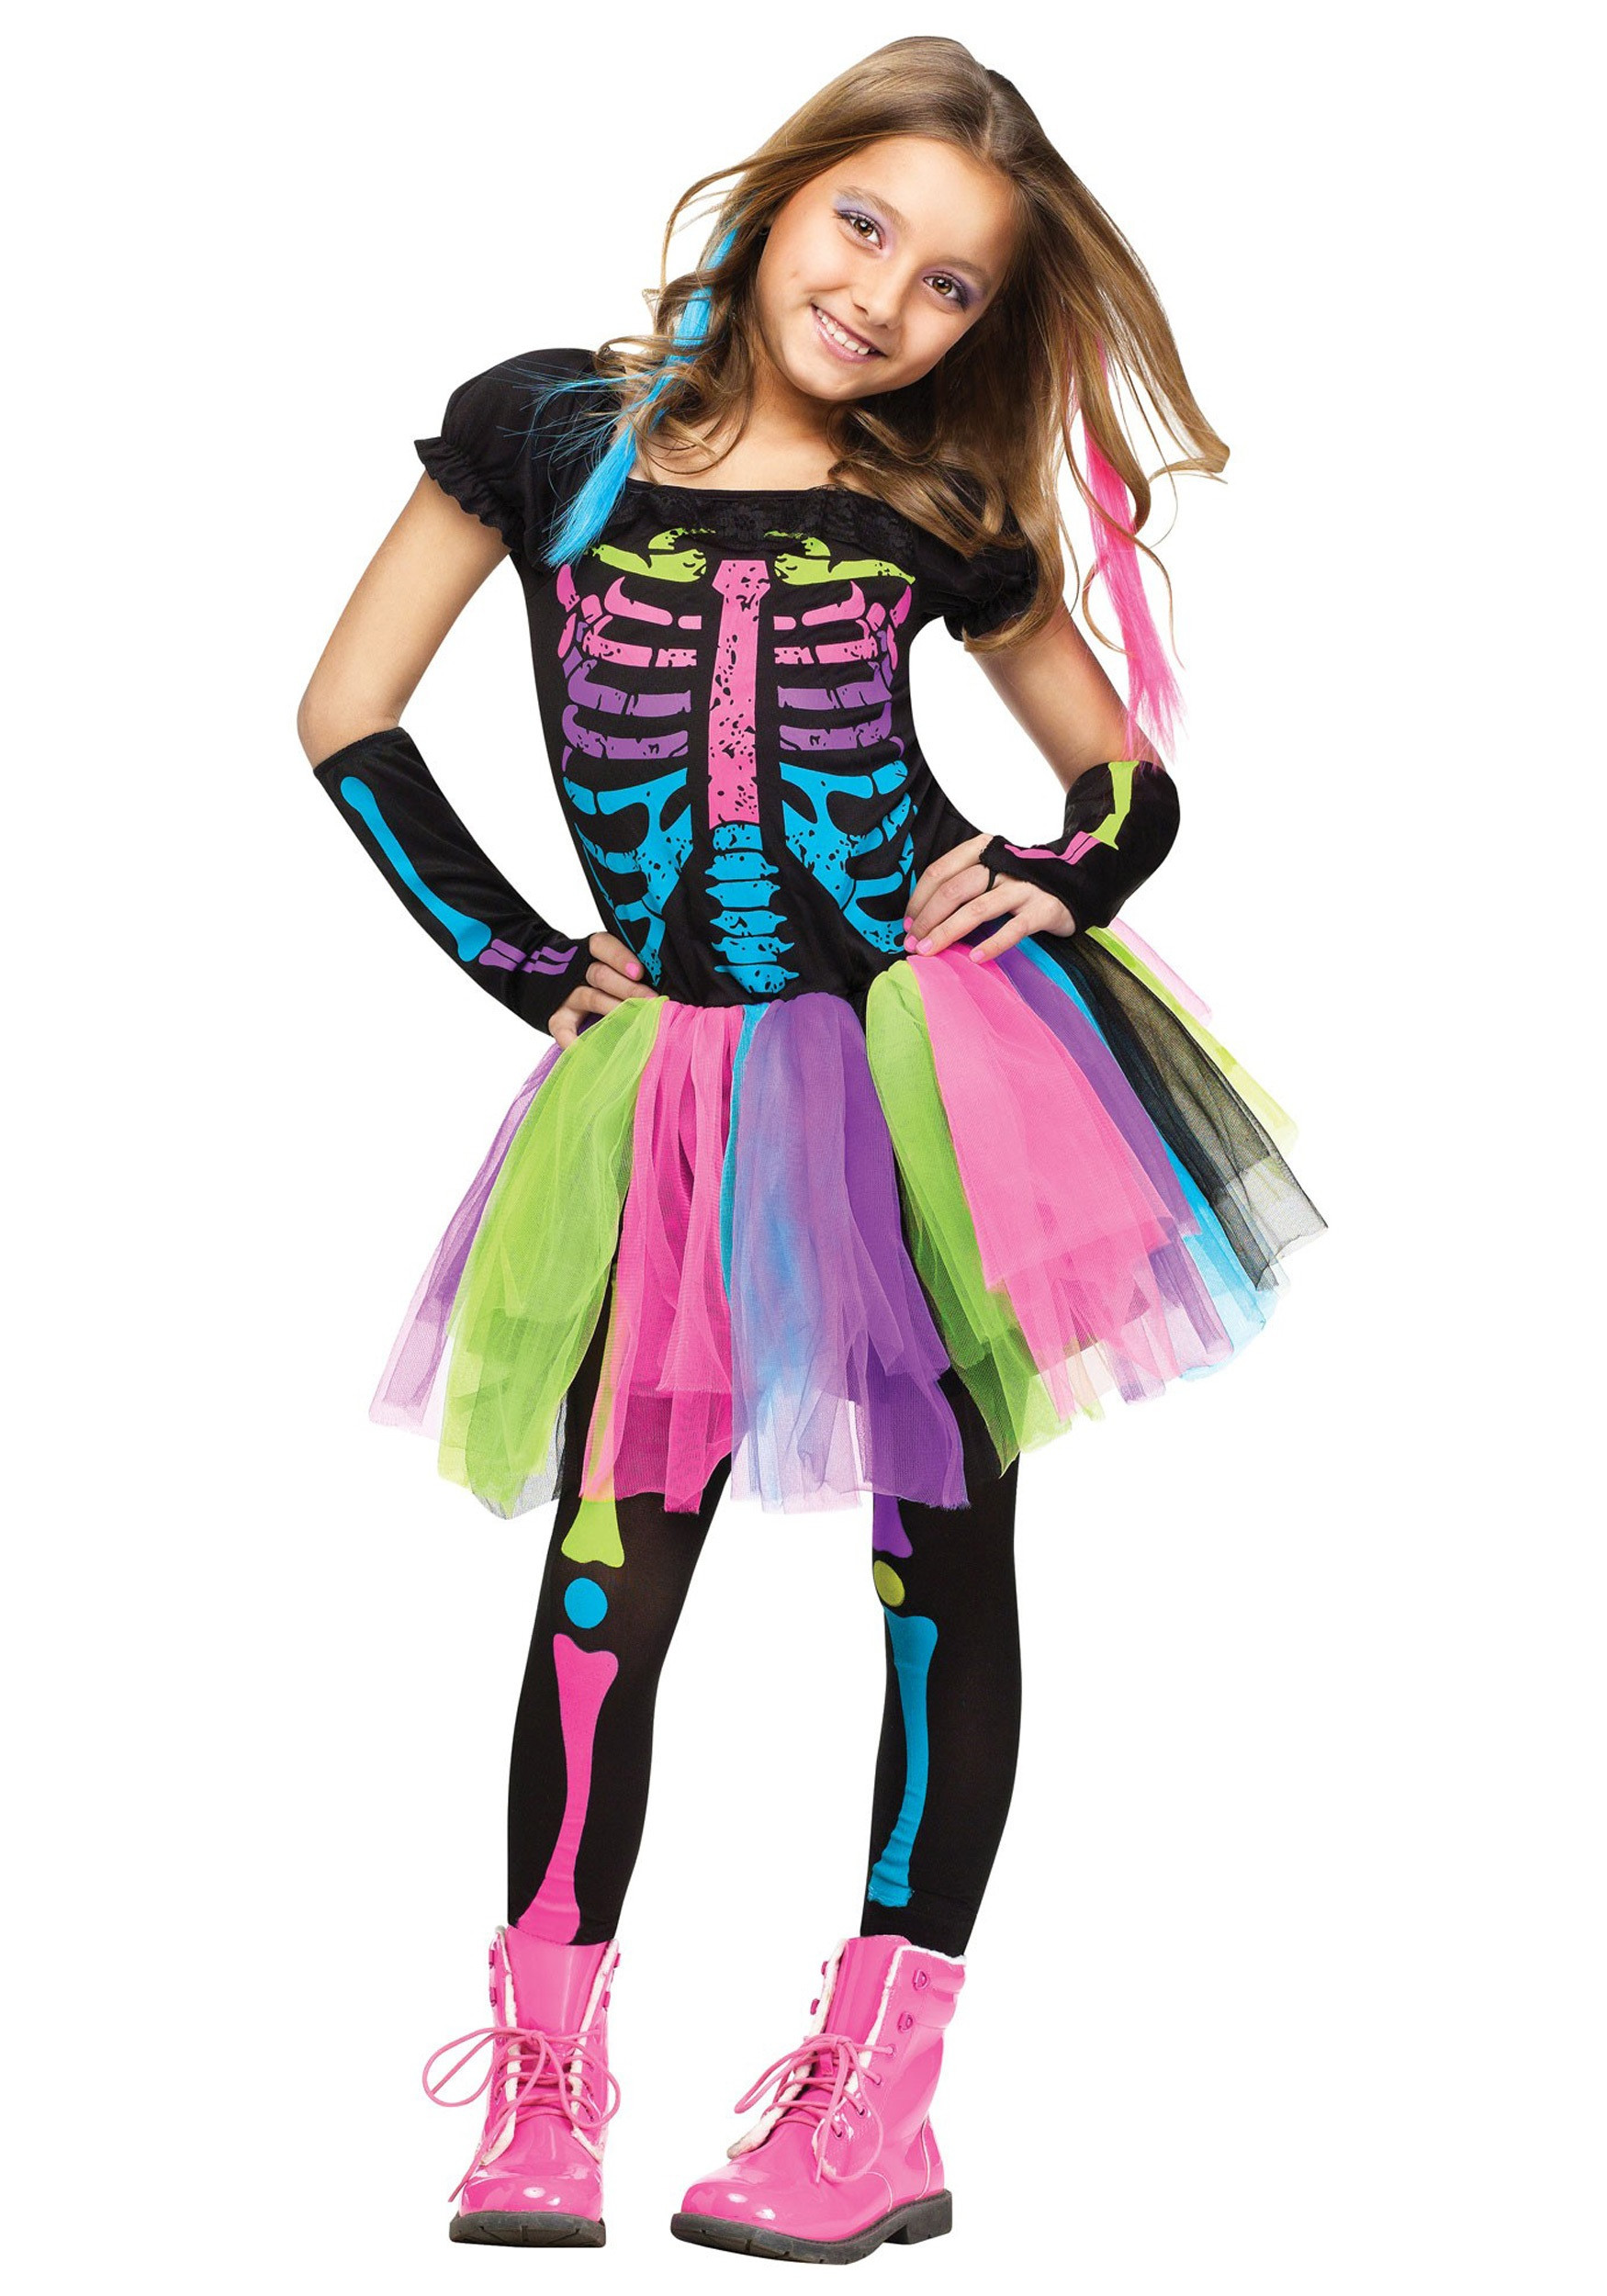 Best ideas about DIY Costumes For Girls . Save or Pin Girls Funky Punky Bones Costume Now.